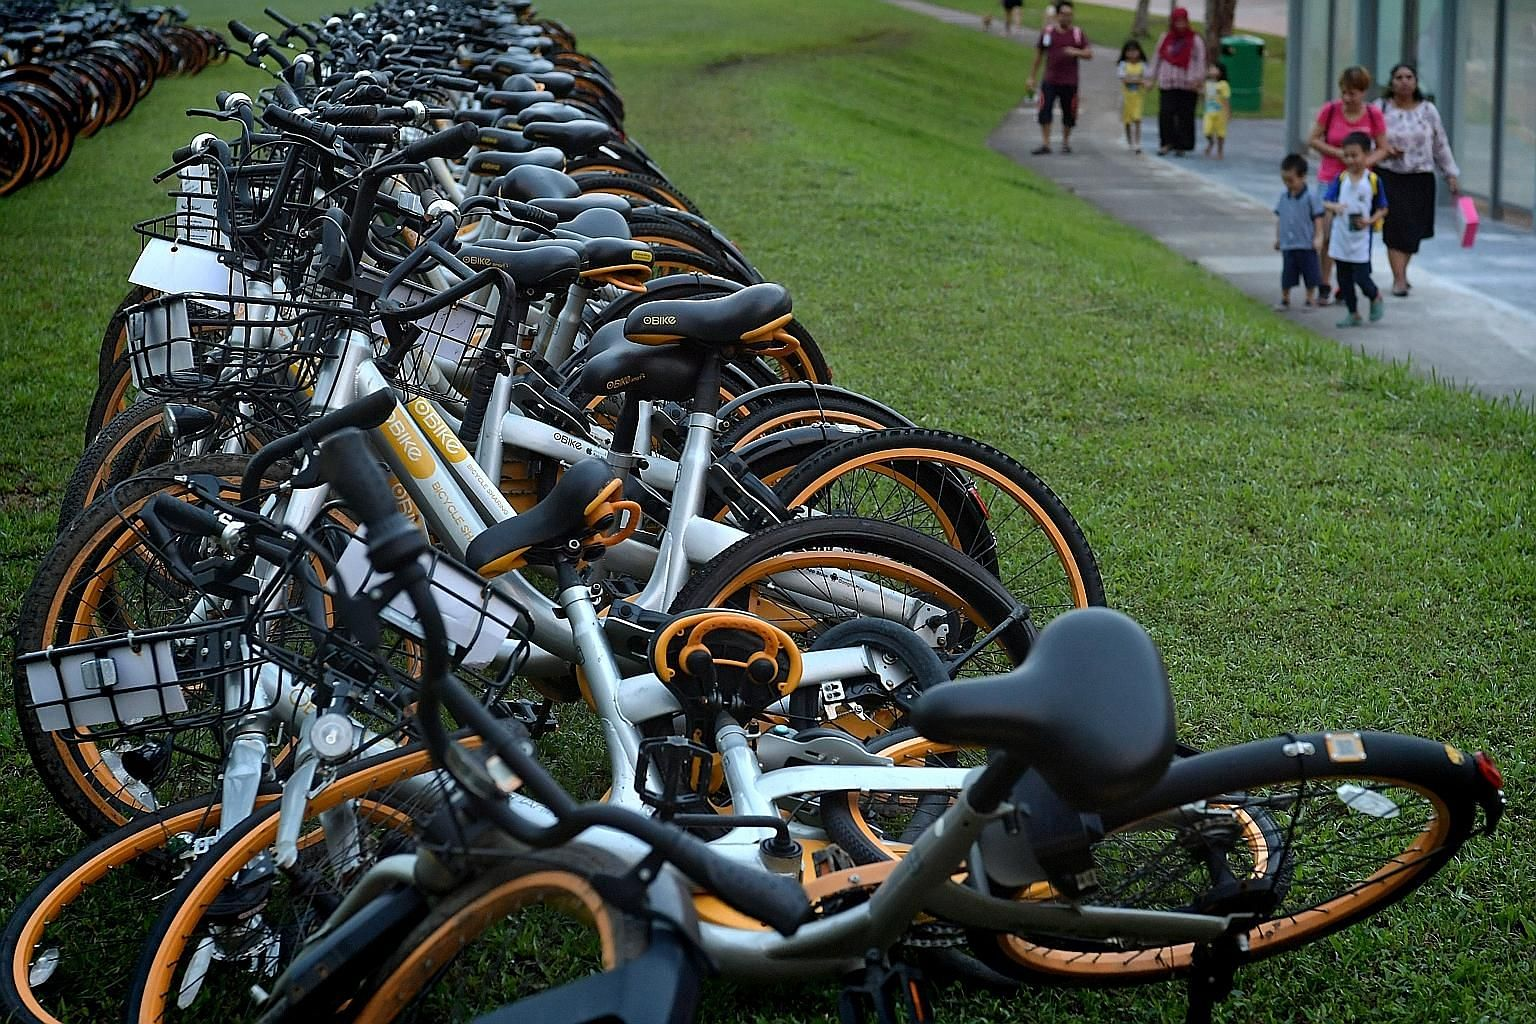 Rows of oBikes in a field in Sengkang yesterday evening. Mr Shi Yi said the firm would not be able to clear all its bikes by yesterday's deadline and was likely to need an extension.